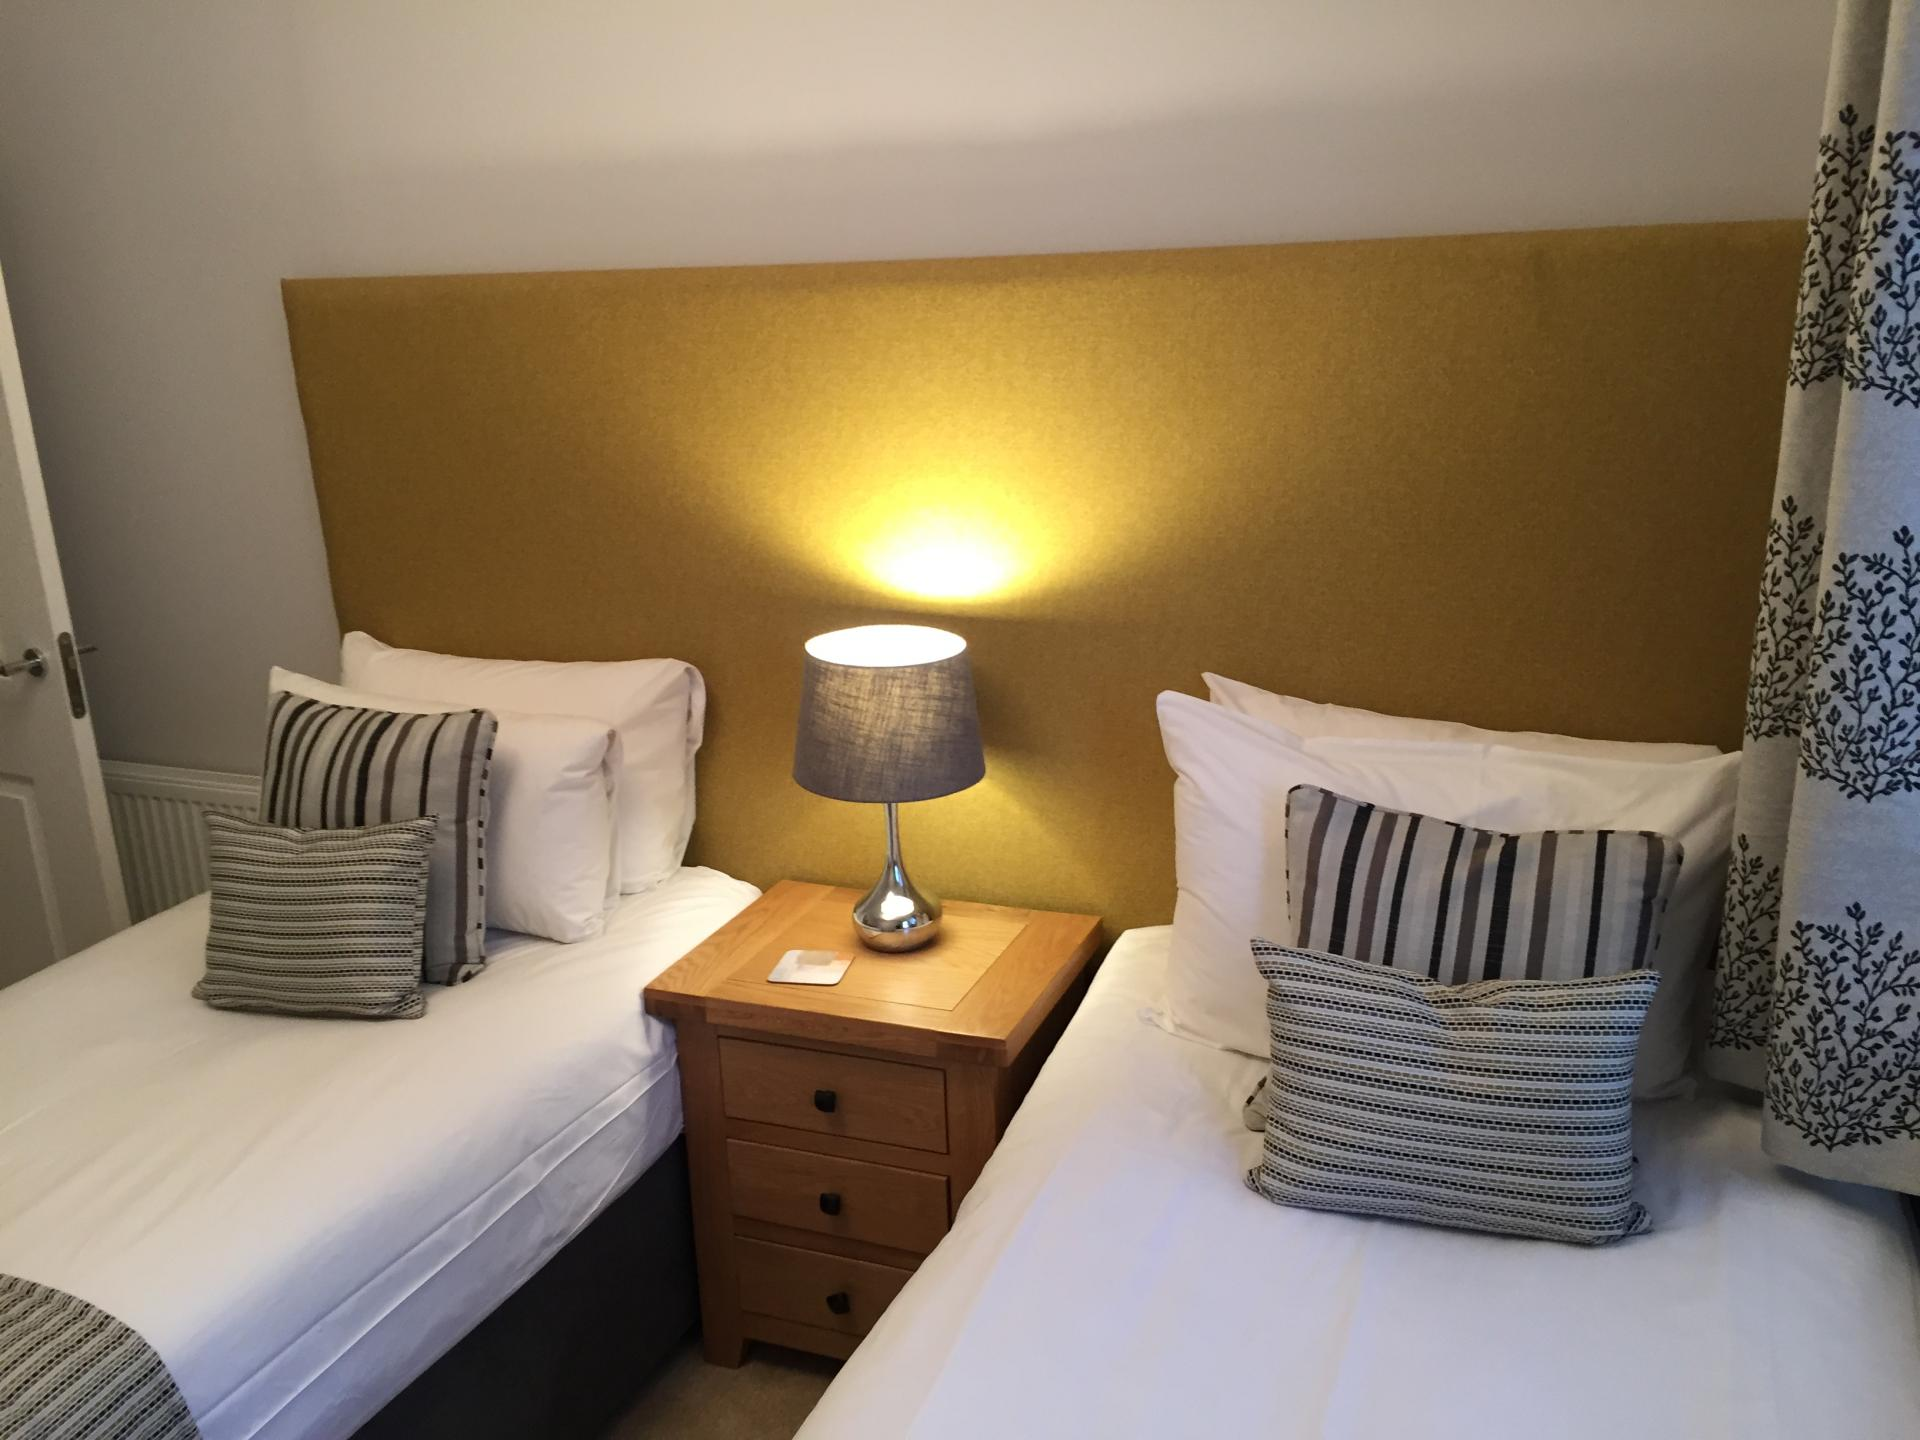 Beds at Hedgefield Apartments, Centre, Inverness